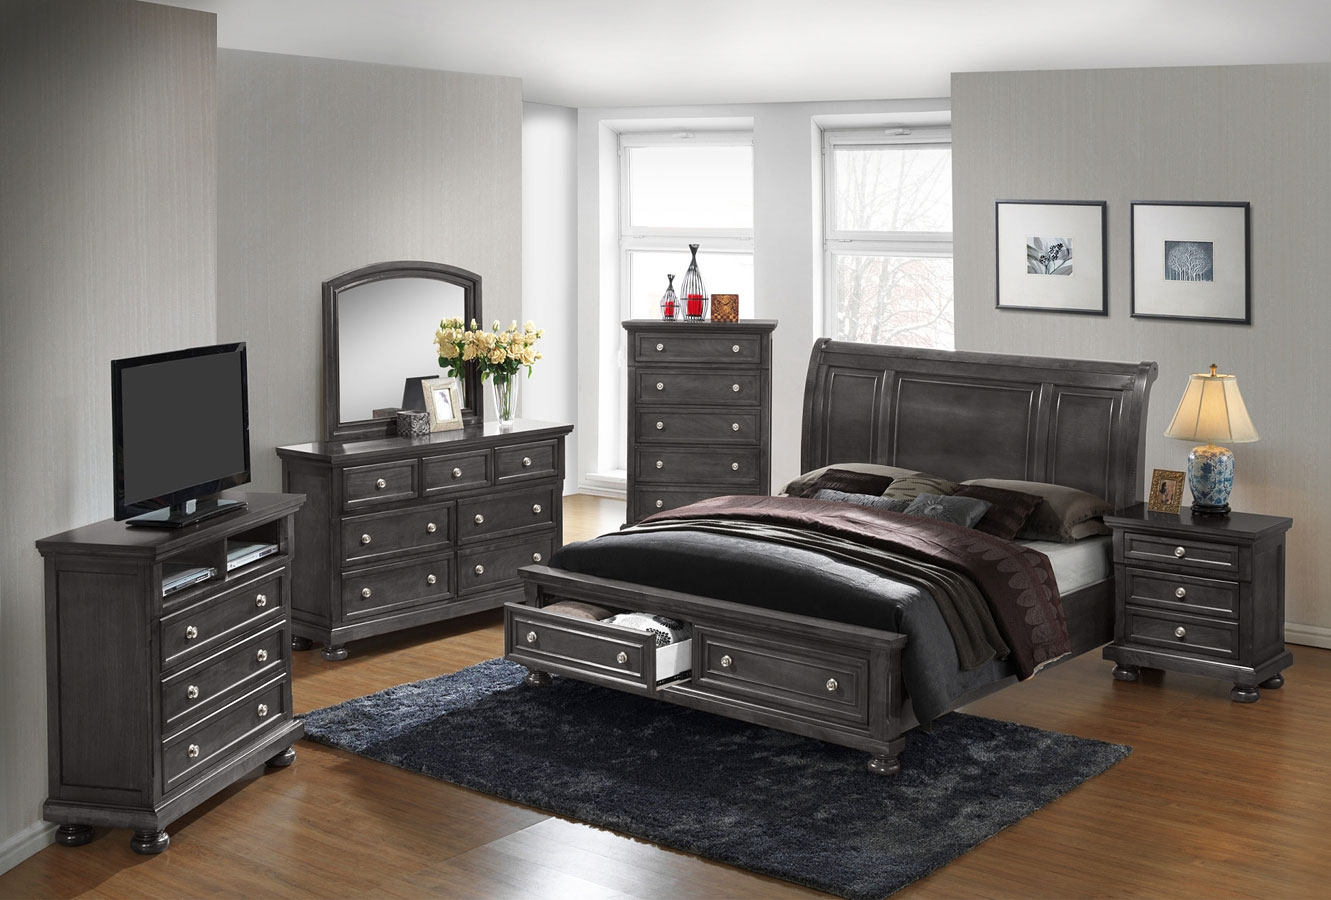 G7015a youth storage bedroom set glory furniture - Youth bedroom furniture with storage ...